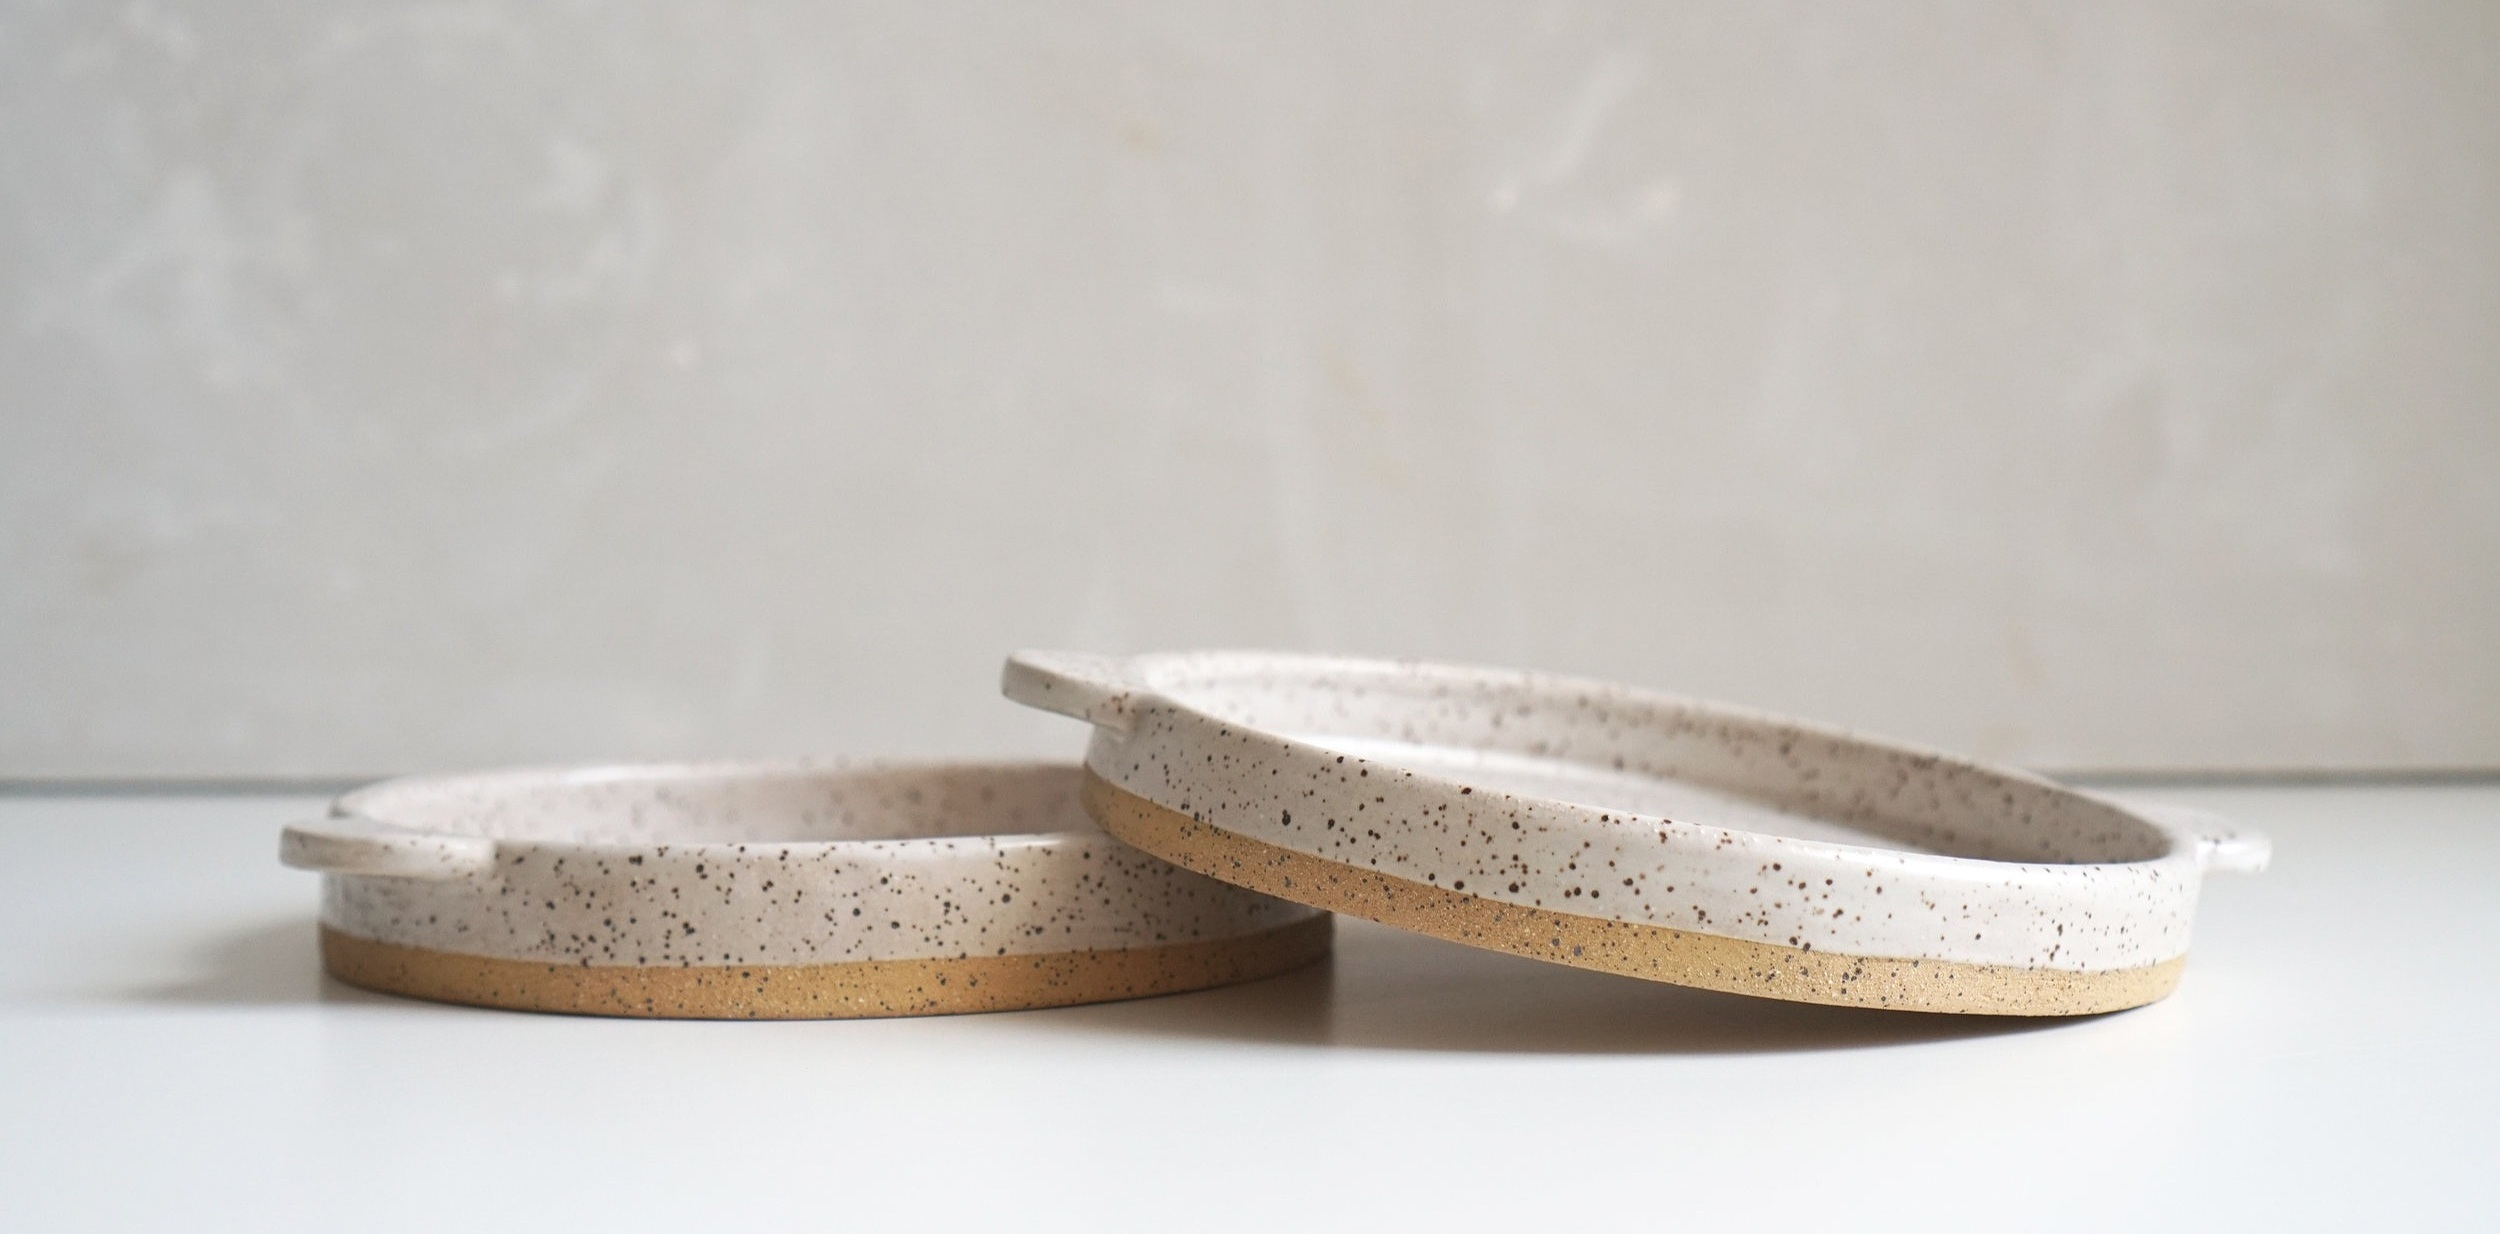 Botanically inspired | made by the sea - modern ceramics